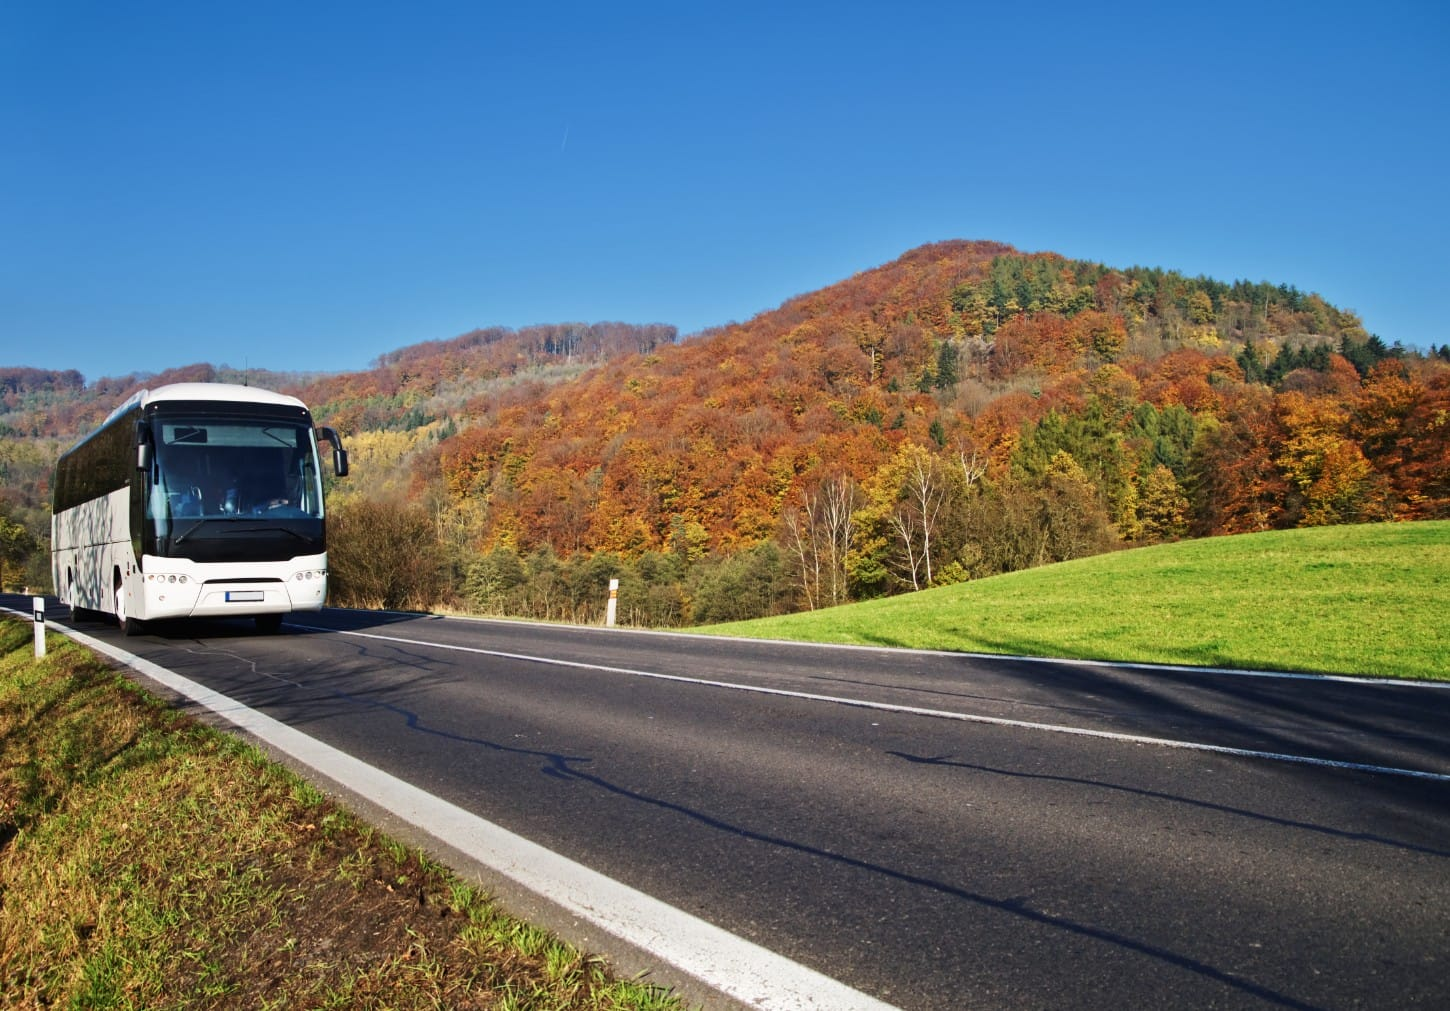 Rent a bus for a day trip